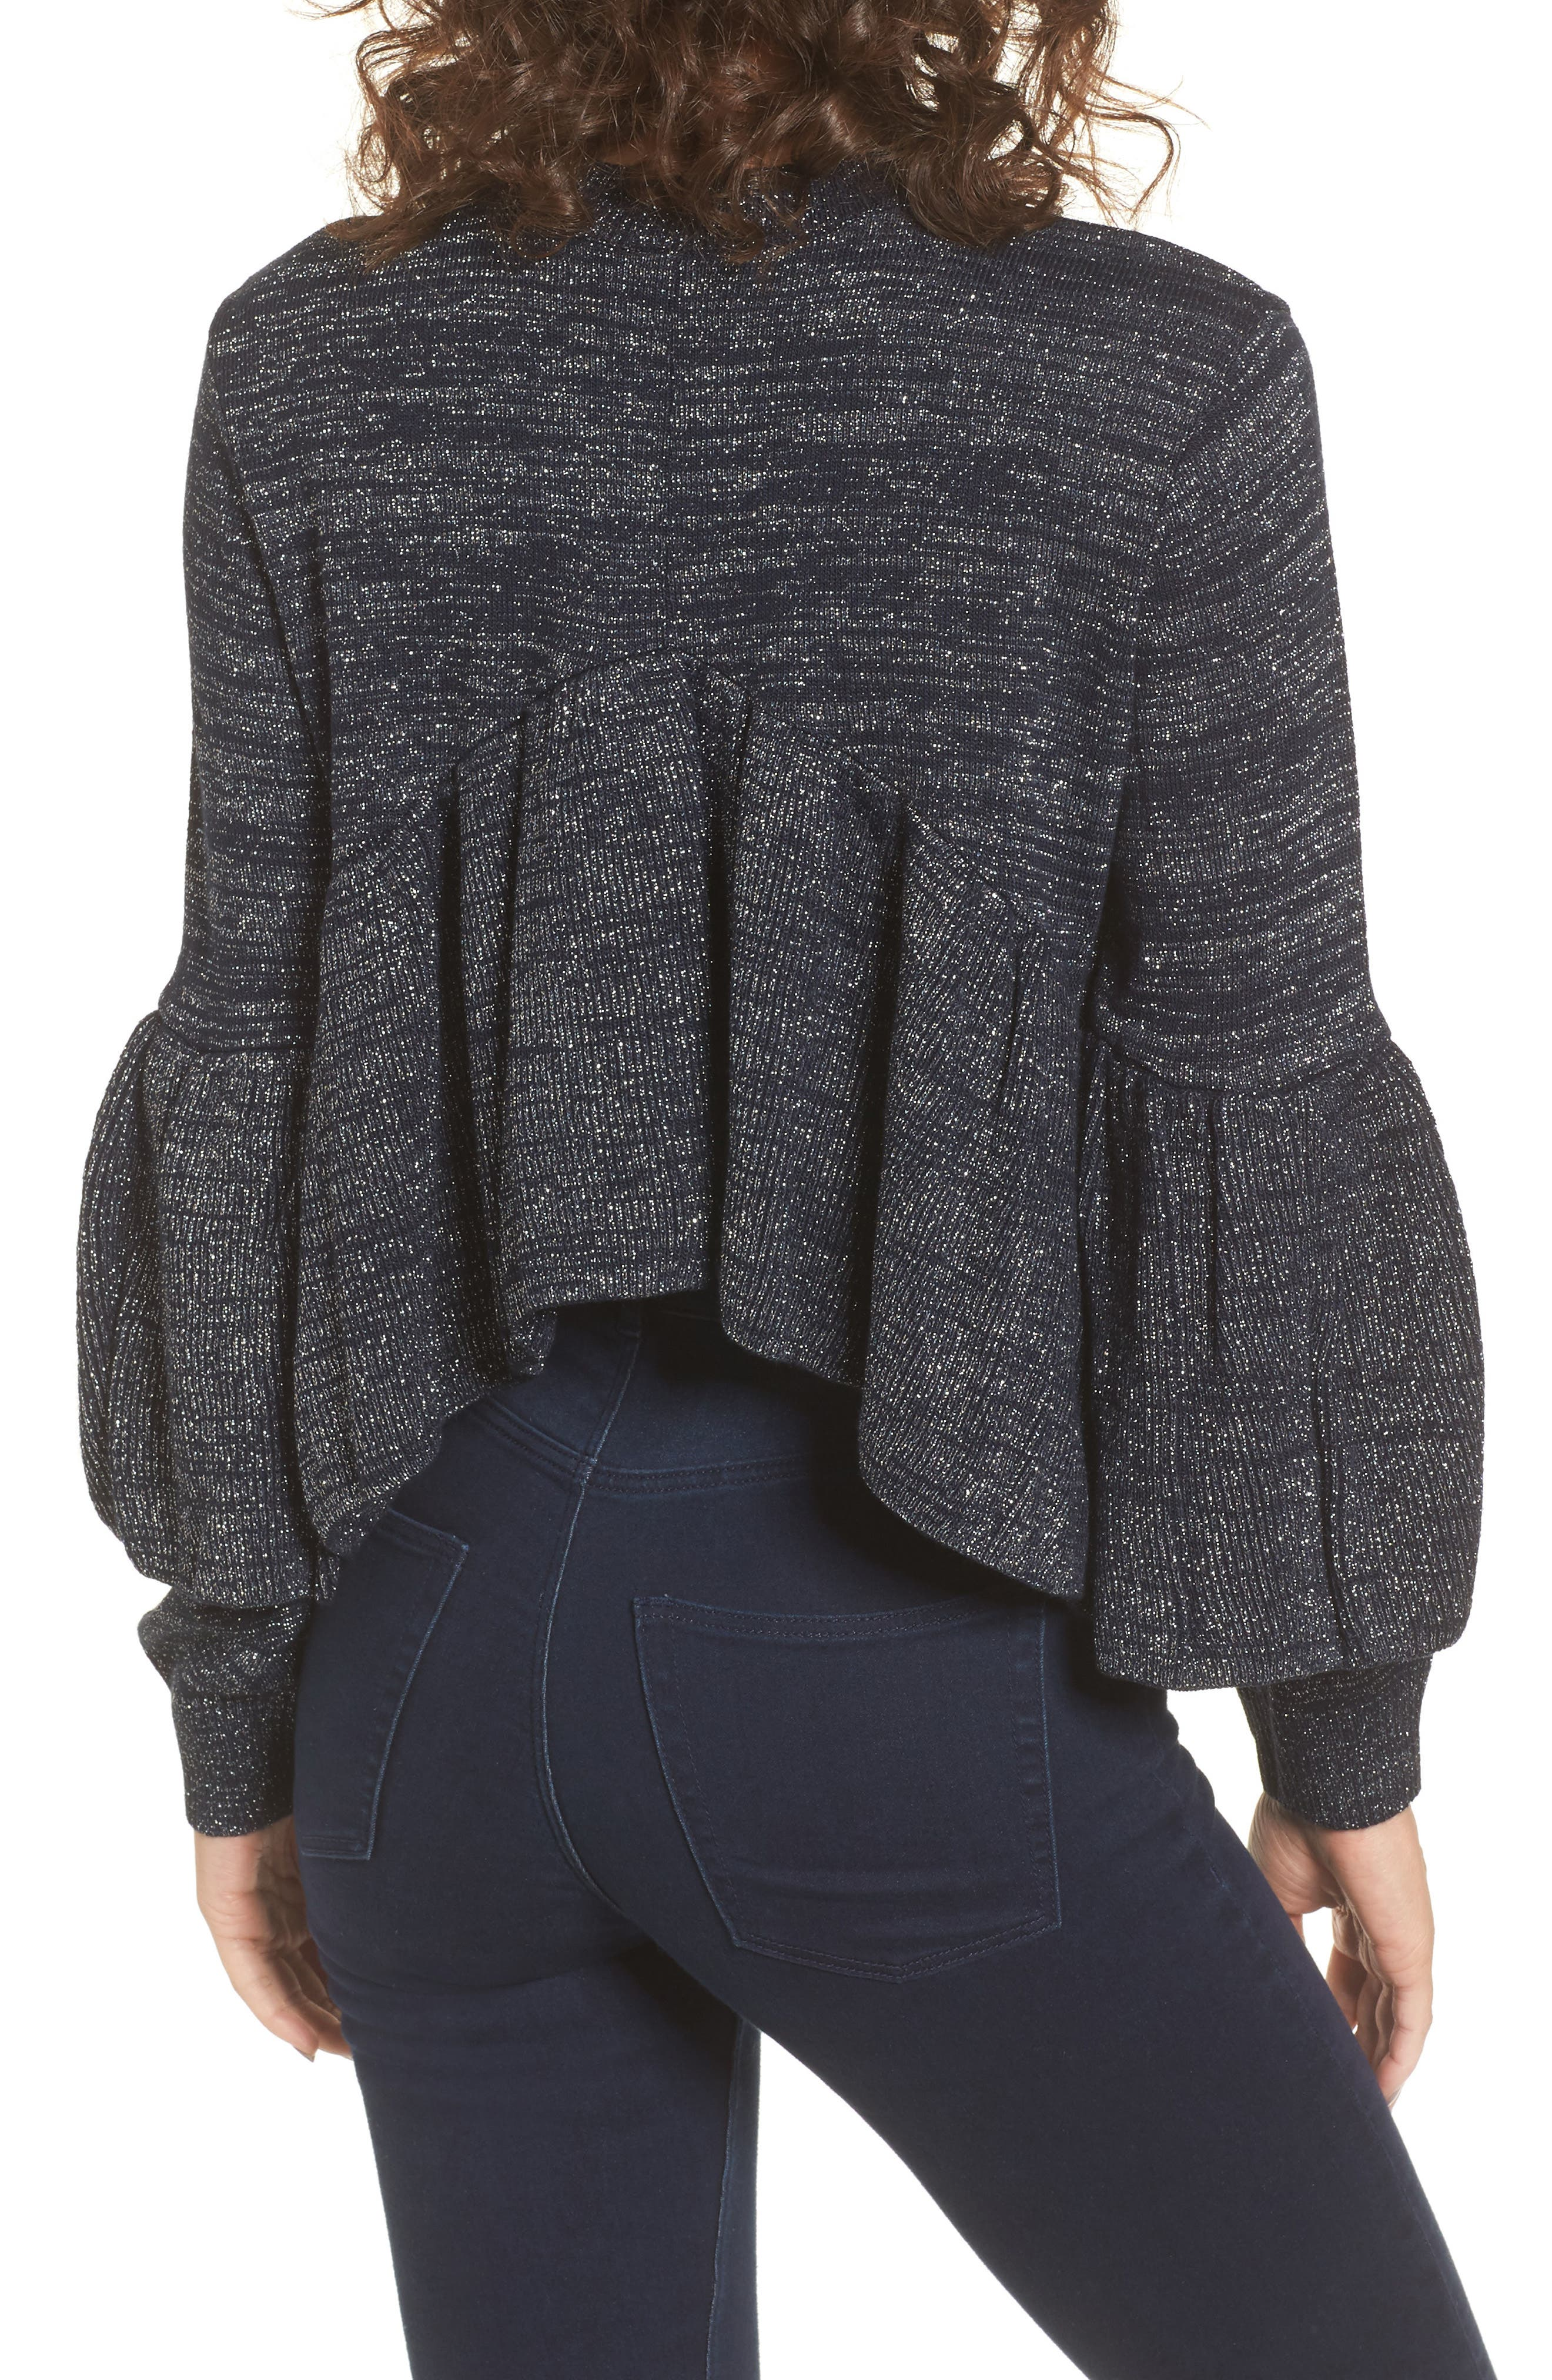 Ruffle Sweater,                             Alternate thumbnail 2, color,                             400